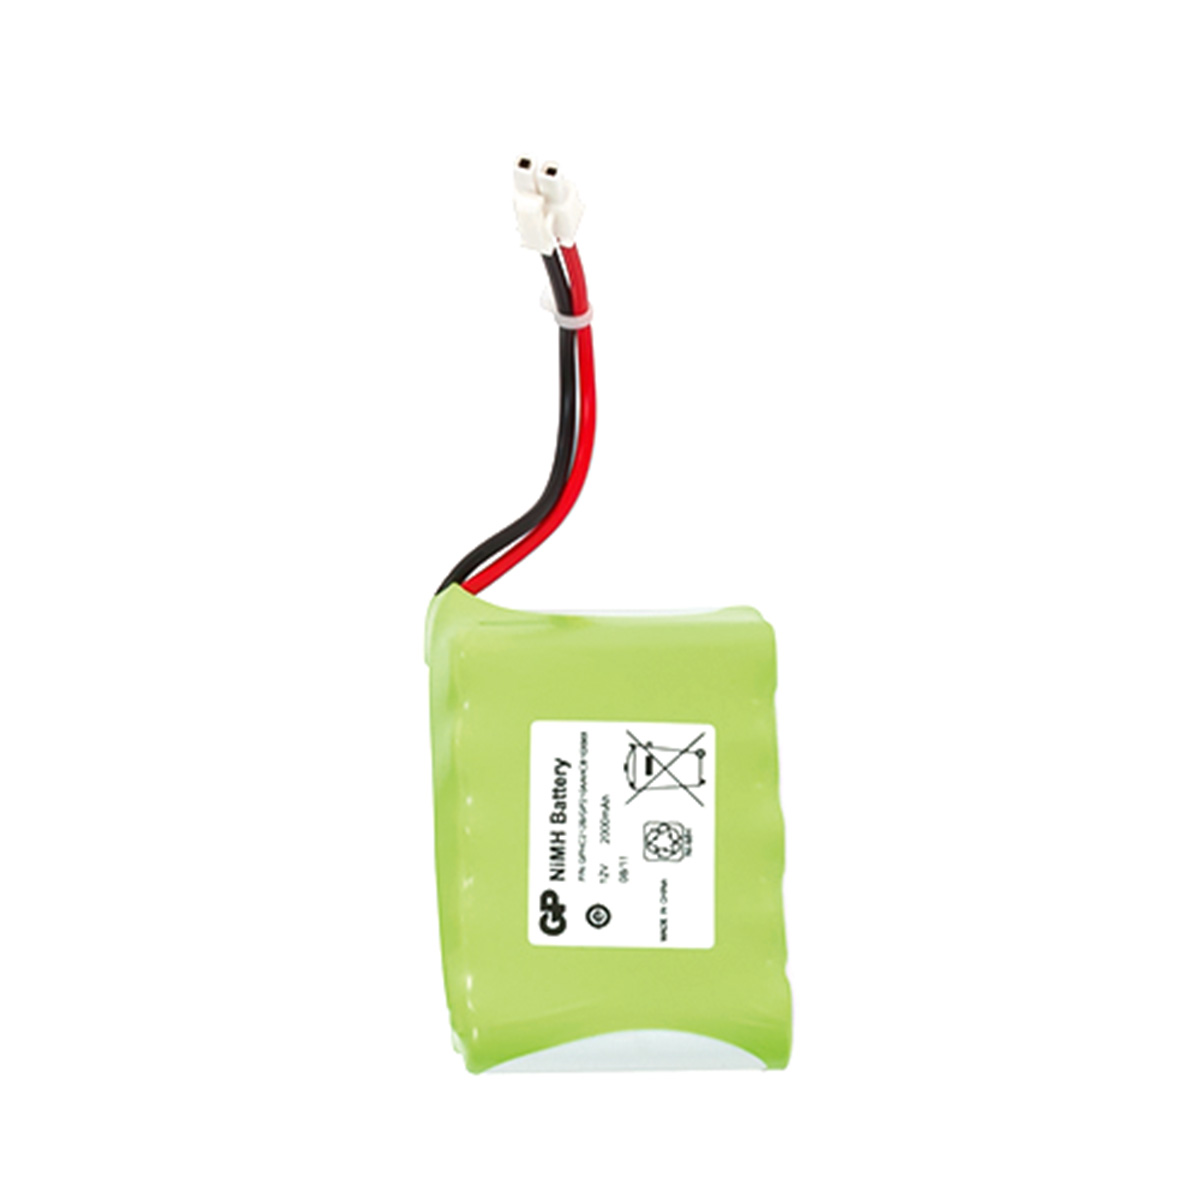 Battery Pack for Perimeter Switch FR-MRK5006A